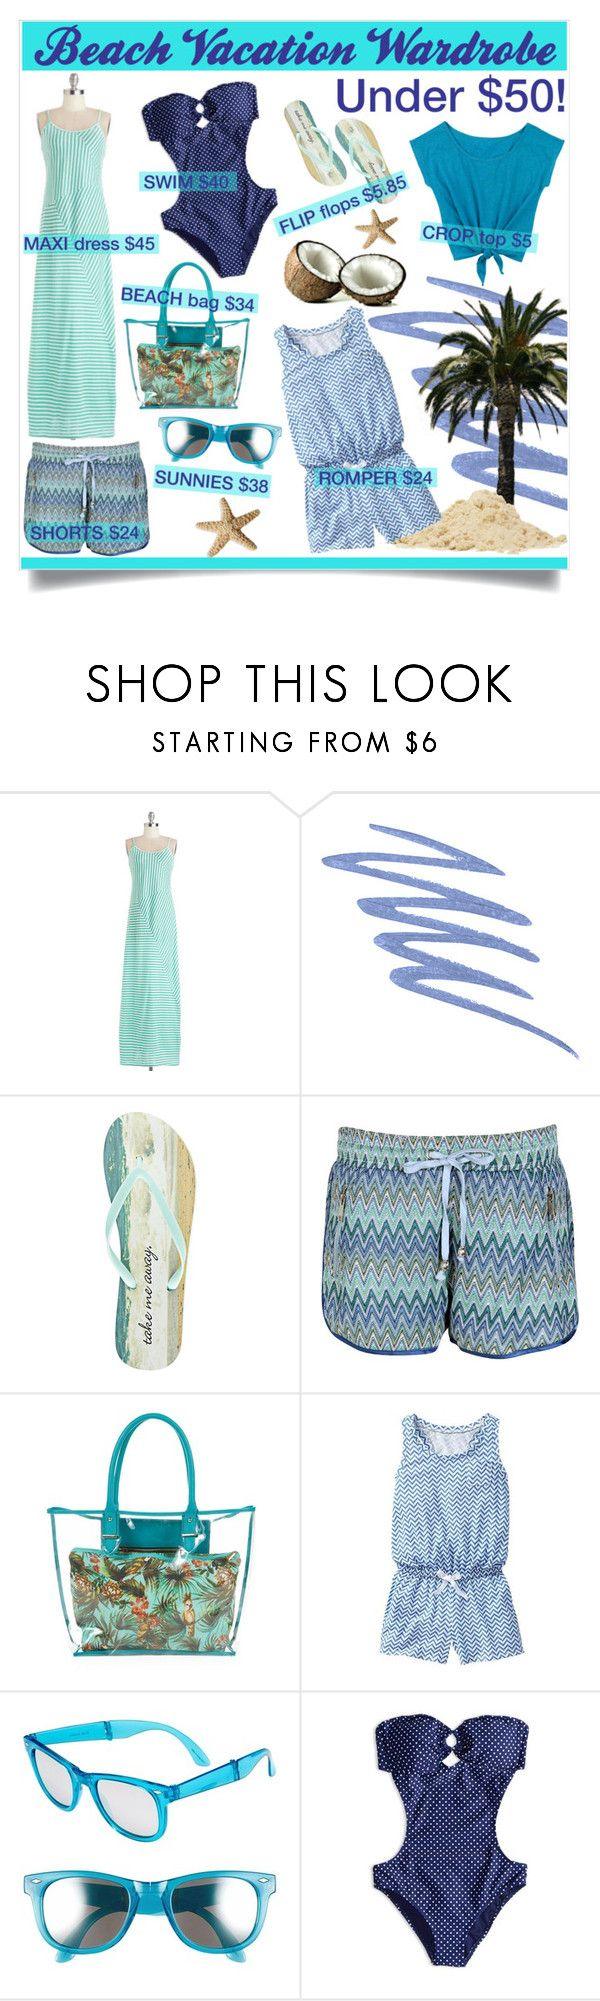 """""""Beach Vacation Wardrobe"""" by reddotdaily ❤ liked on Polyvore featuring Stila, Wet Seal, Boohoo, Gap, Outlook Eyewear, American Eagle Outfitters, Summer, beach and vacation"""